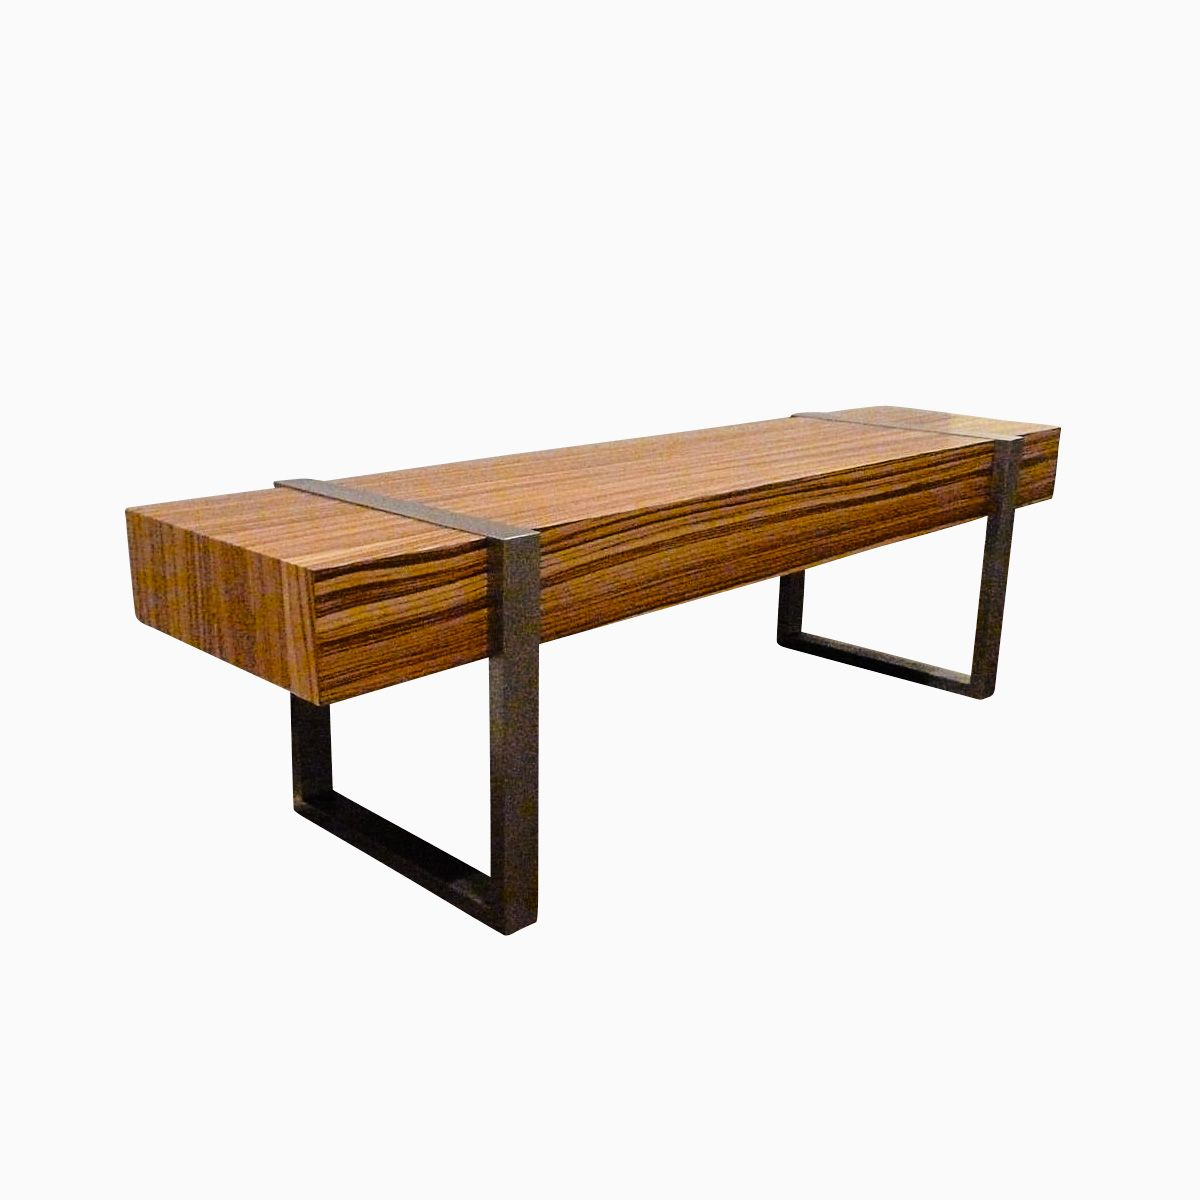 Hand made welded modern interior zebra wood bench seat by